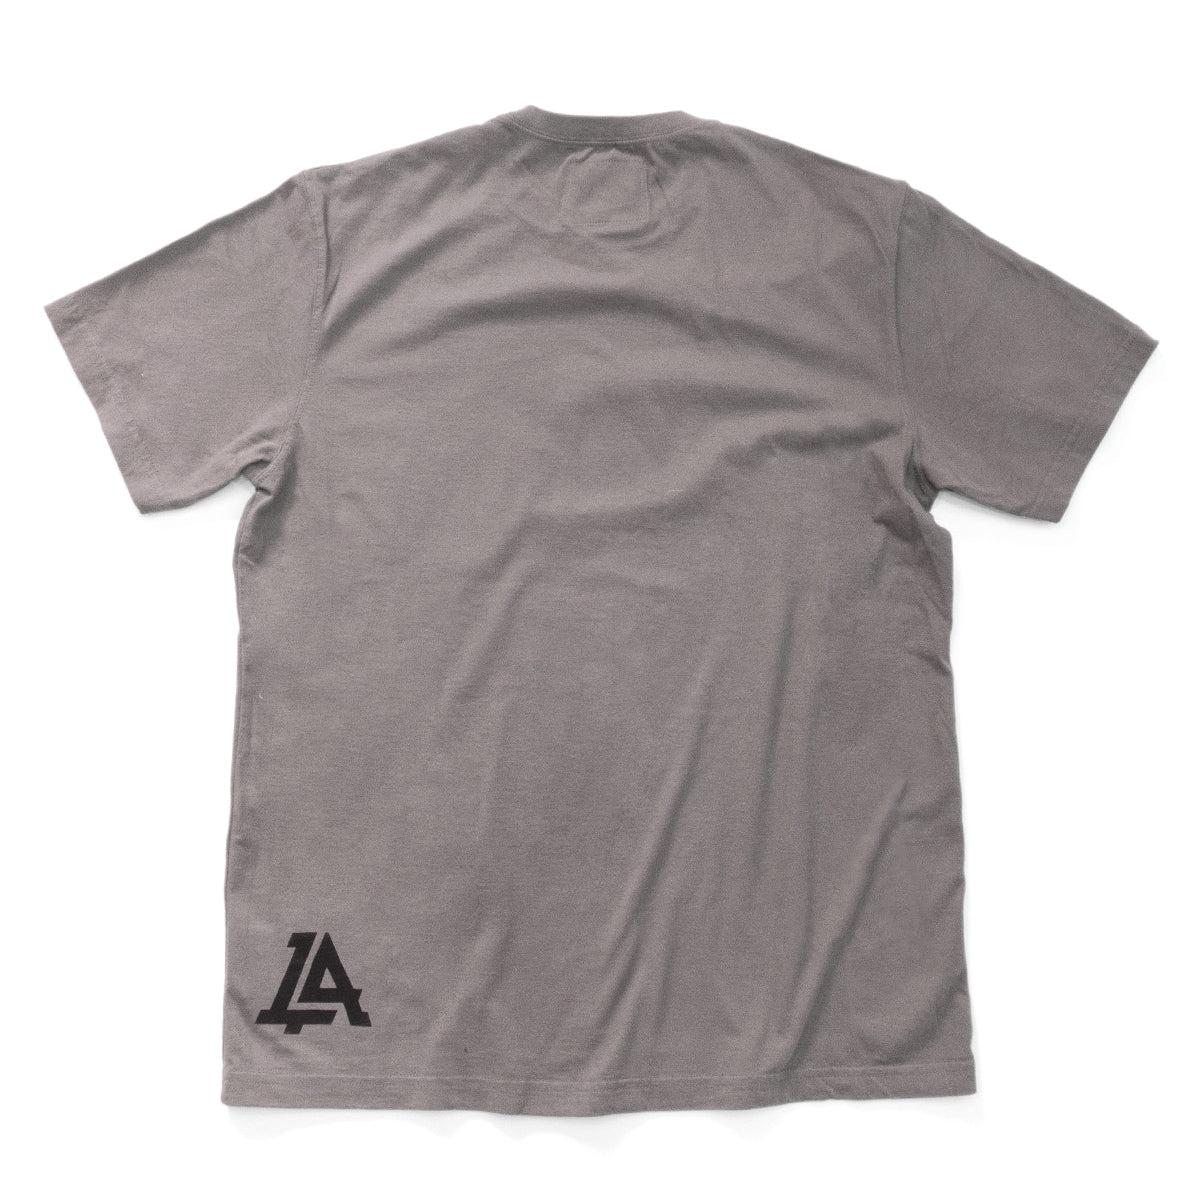 Lost Art Canada - black on slate grey monogram logo tee back view